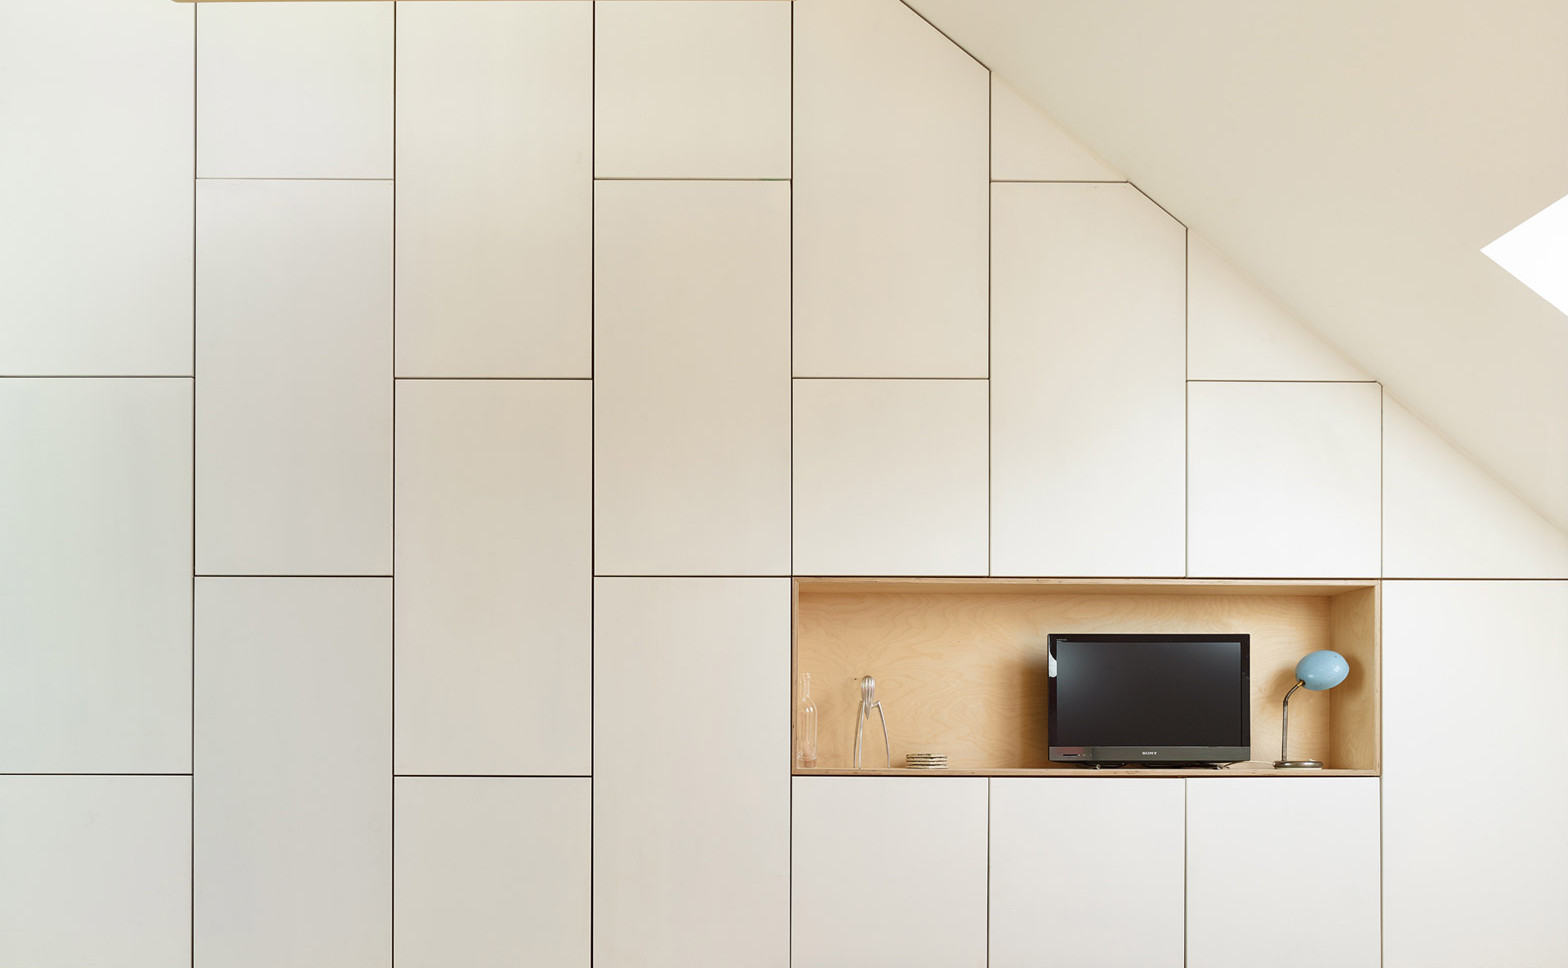 Renovation-extension-house_Schaarbeek-Brussels_Martens-Brunet-architects_dennisdesmet_dezeen_1568_8